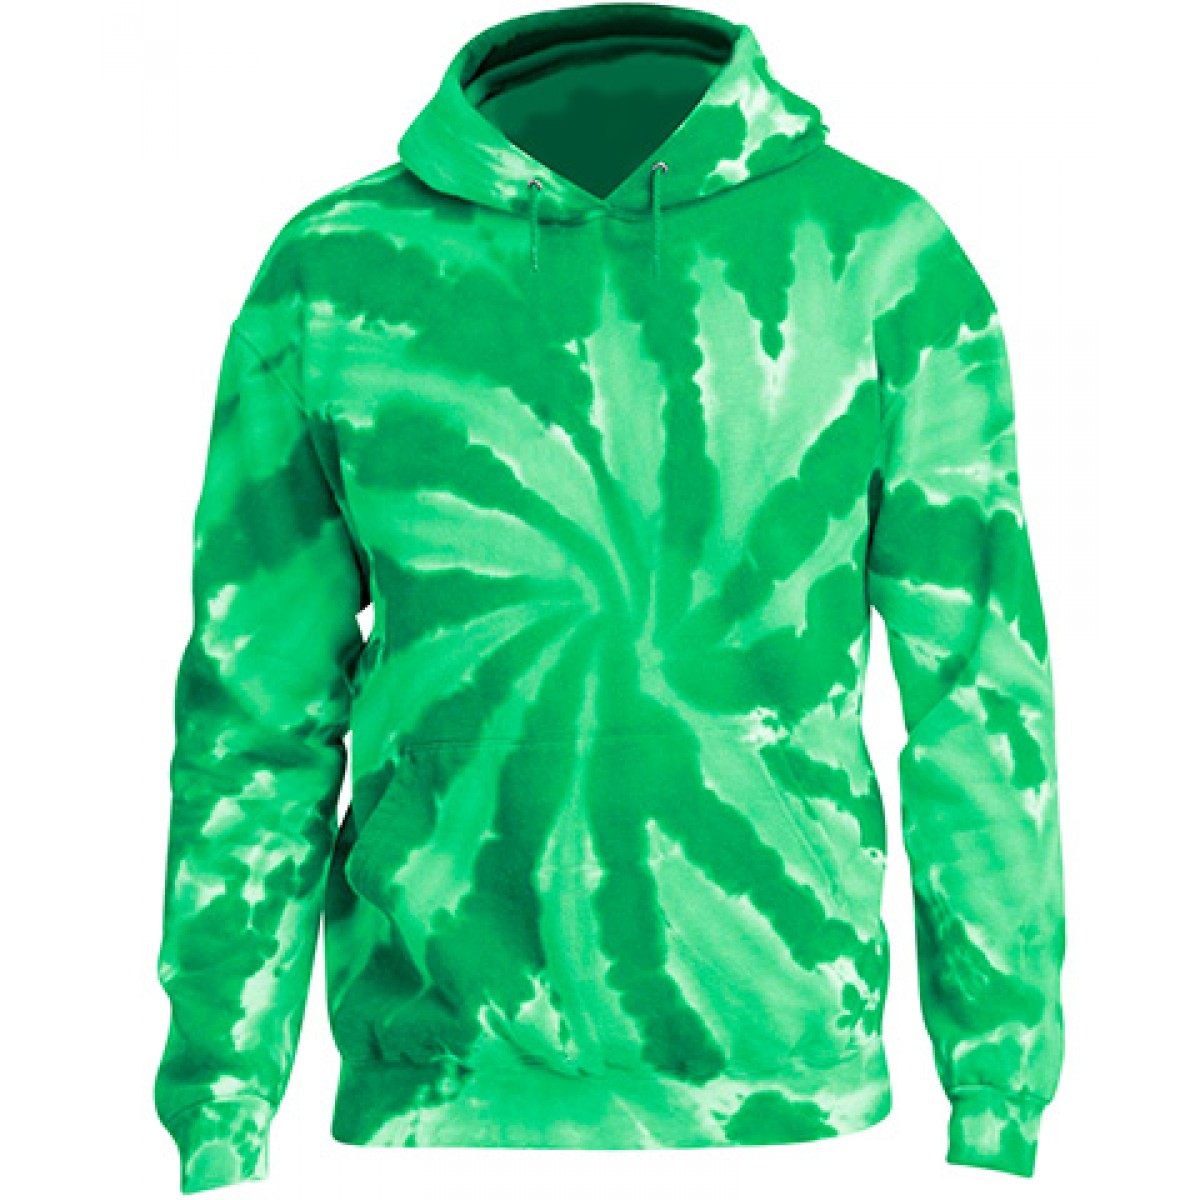 Tie-Dye Pullover Hooded Sweatshirt-Green-YL